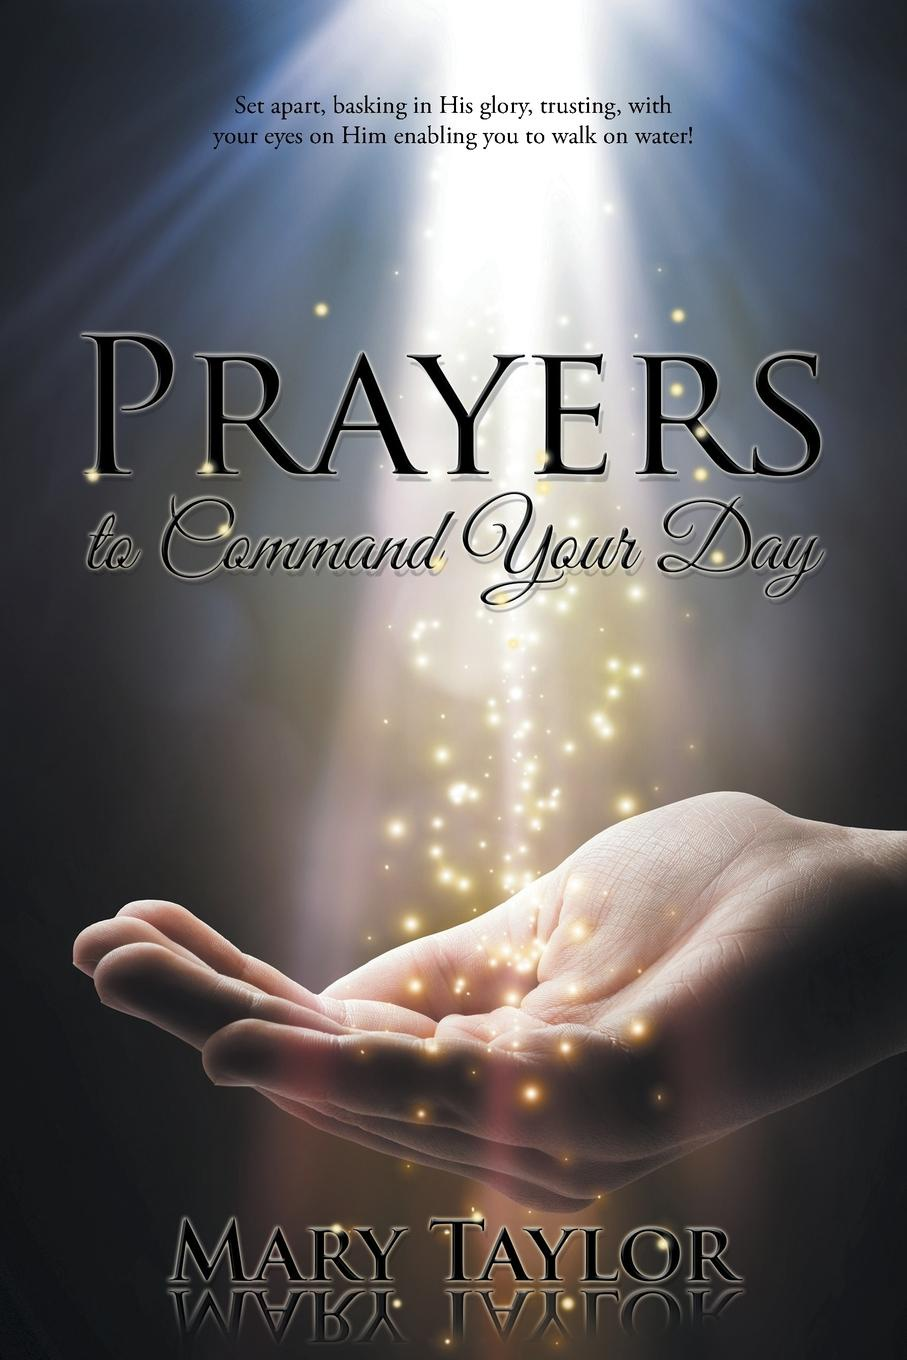 Mary Taylor Prayers to Command Your Day